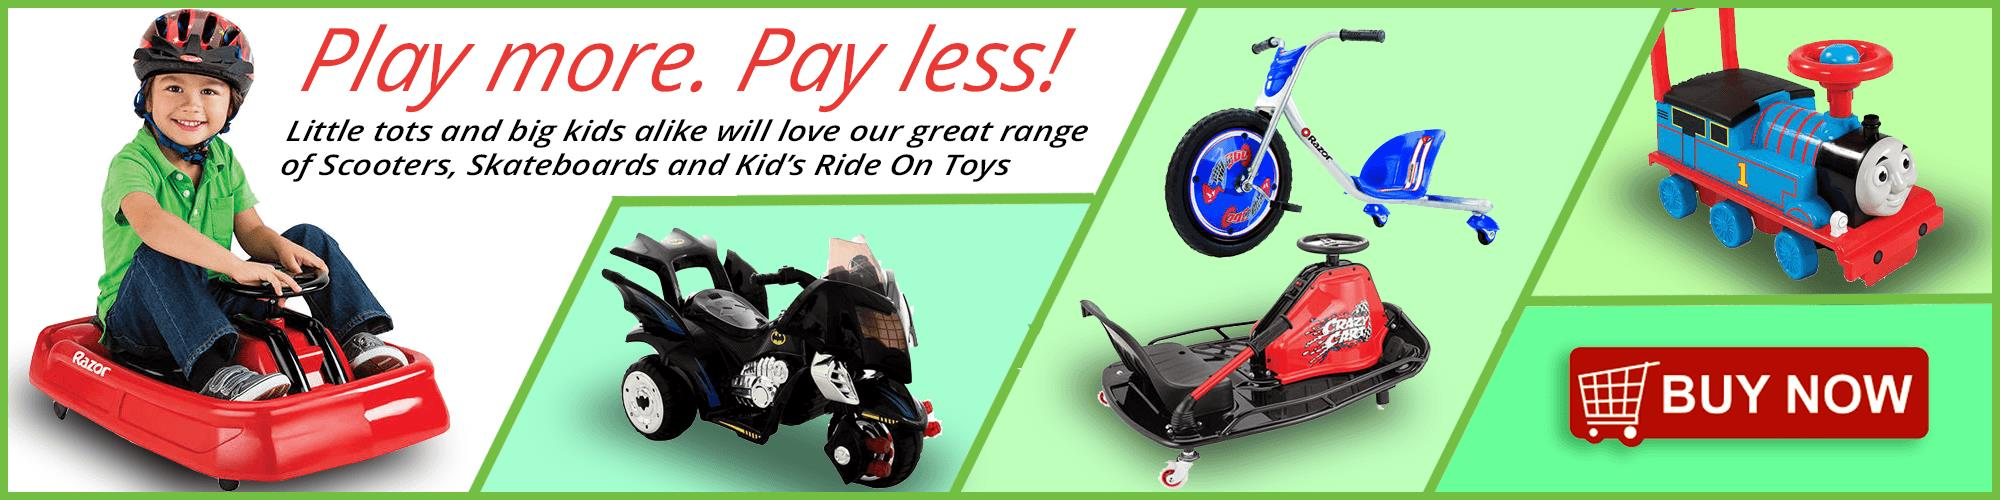 Kids Ride On Toys, Scooters, Electric Ride On's and More - Massive Range Now In Stock